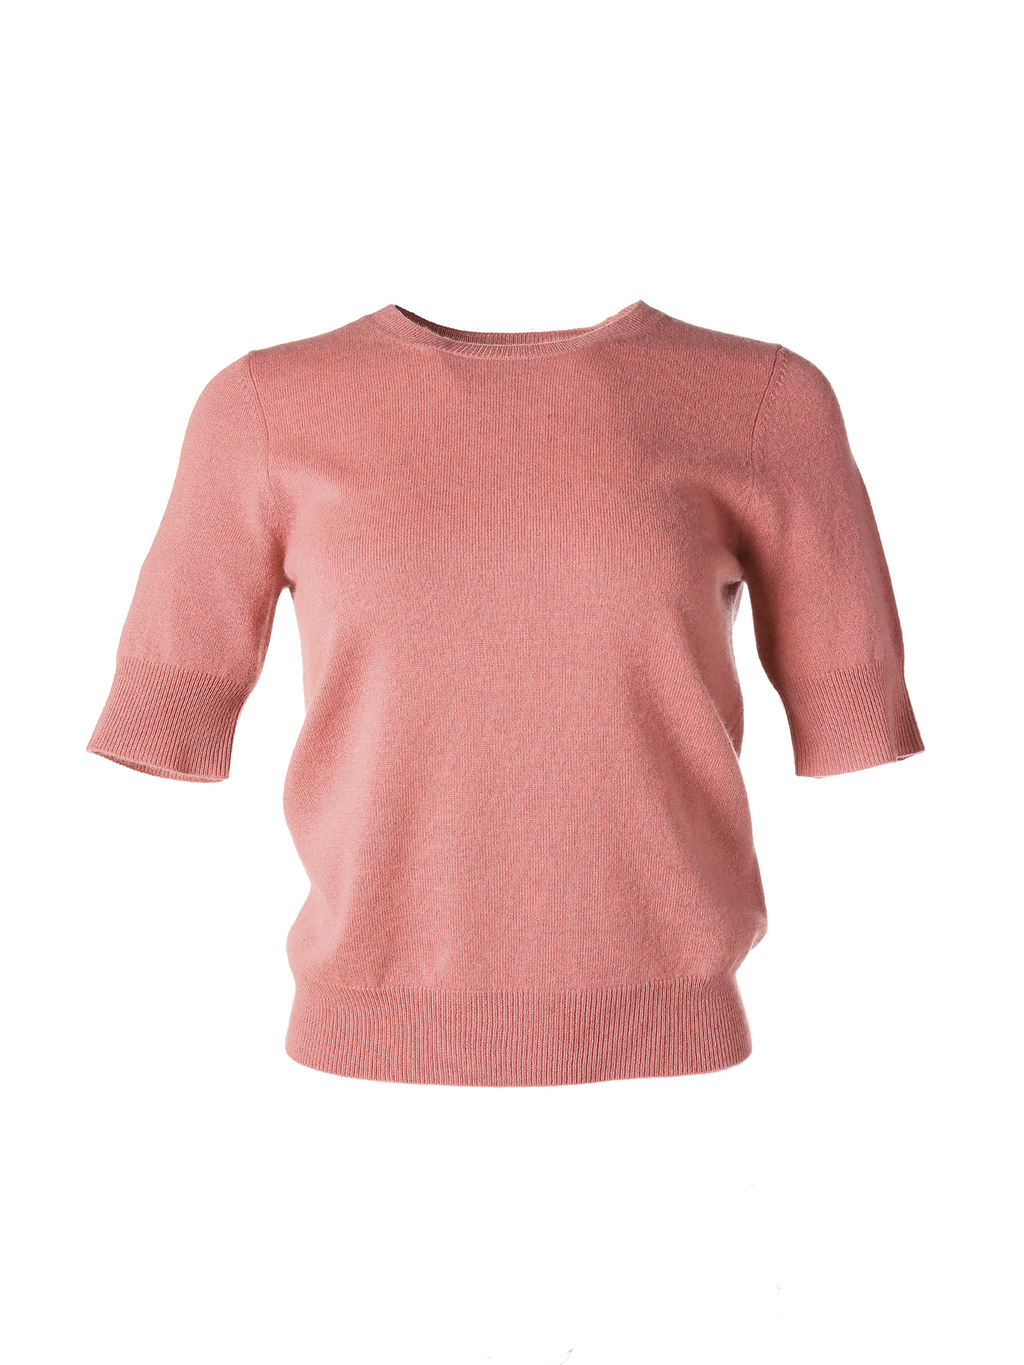 Repeat Cashmere Short Sleeve Tee